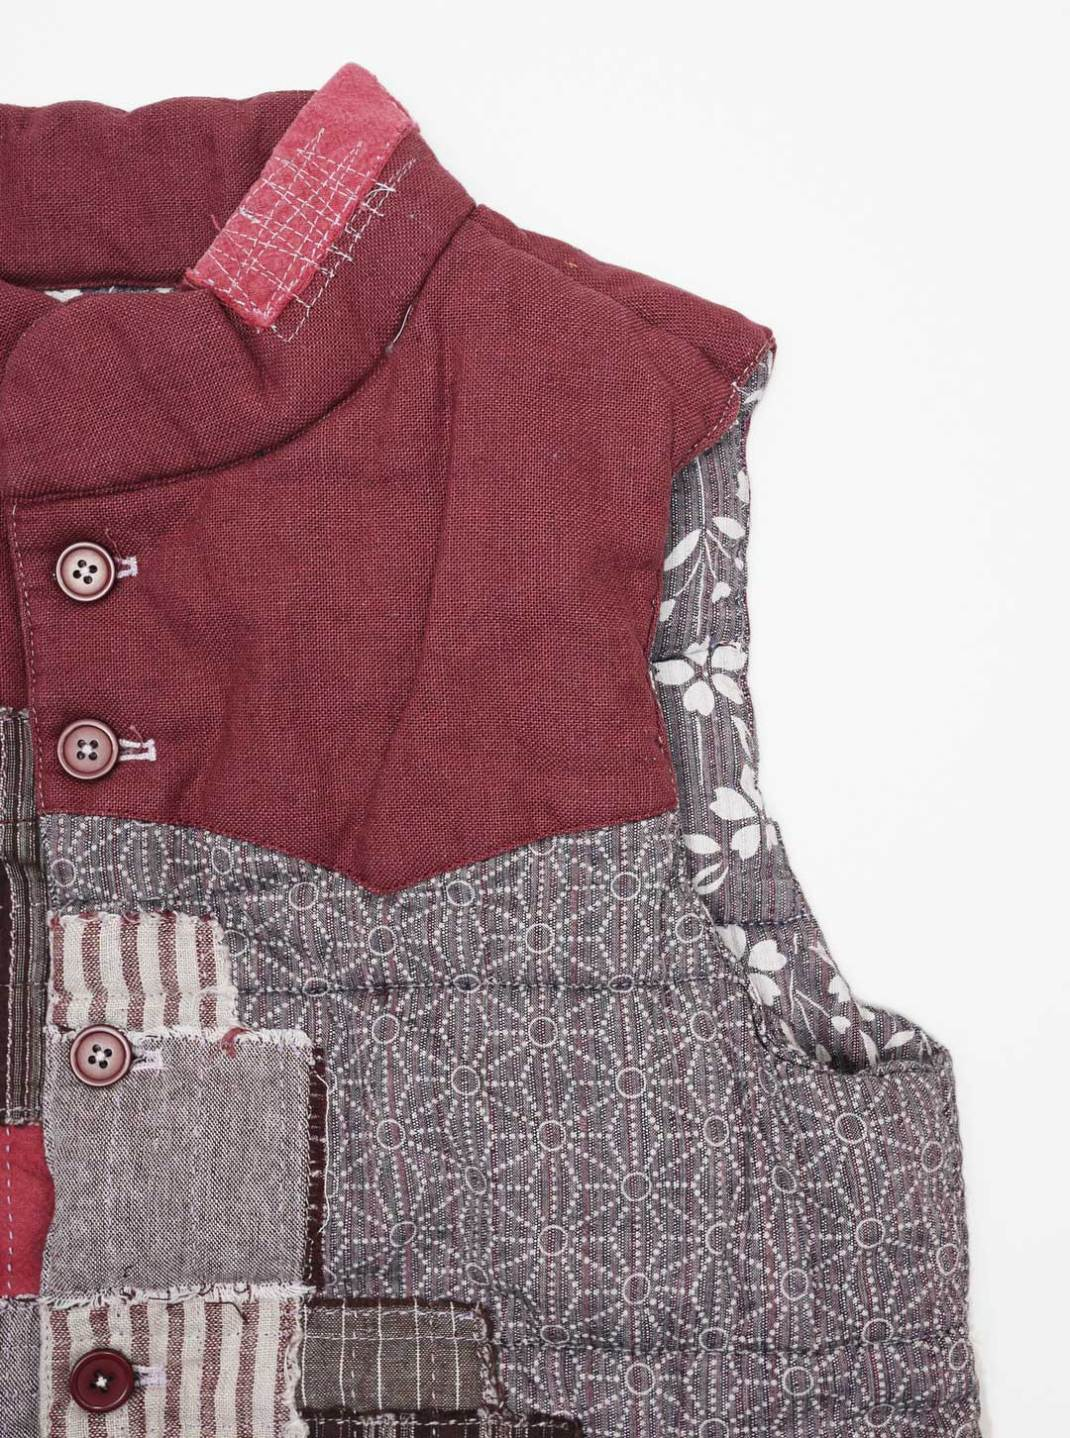 0004-13911_creep-patch-gilet